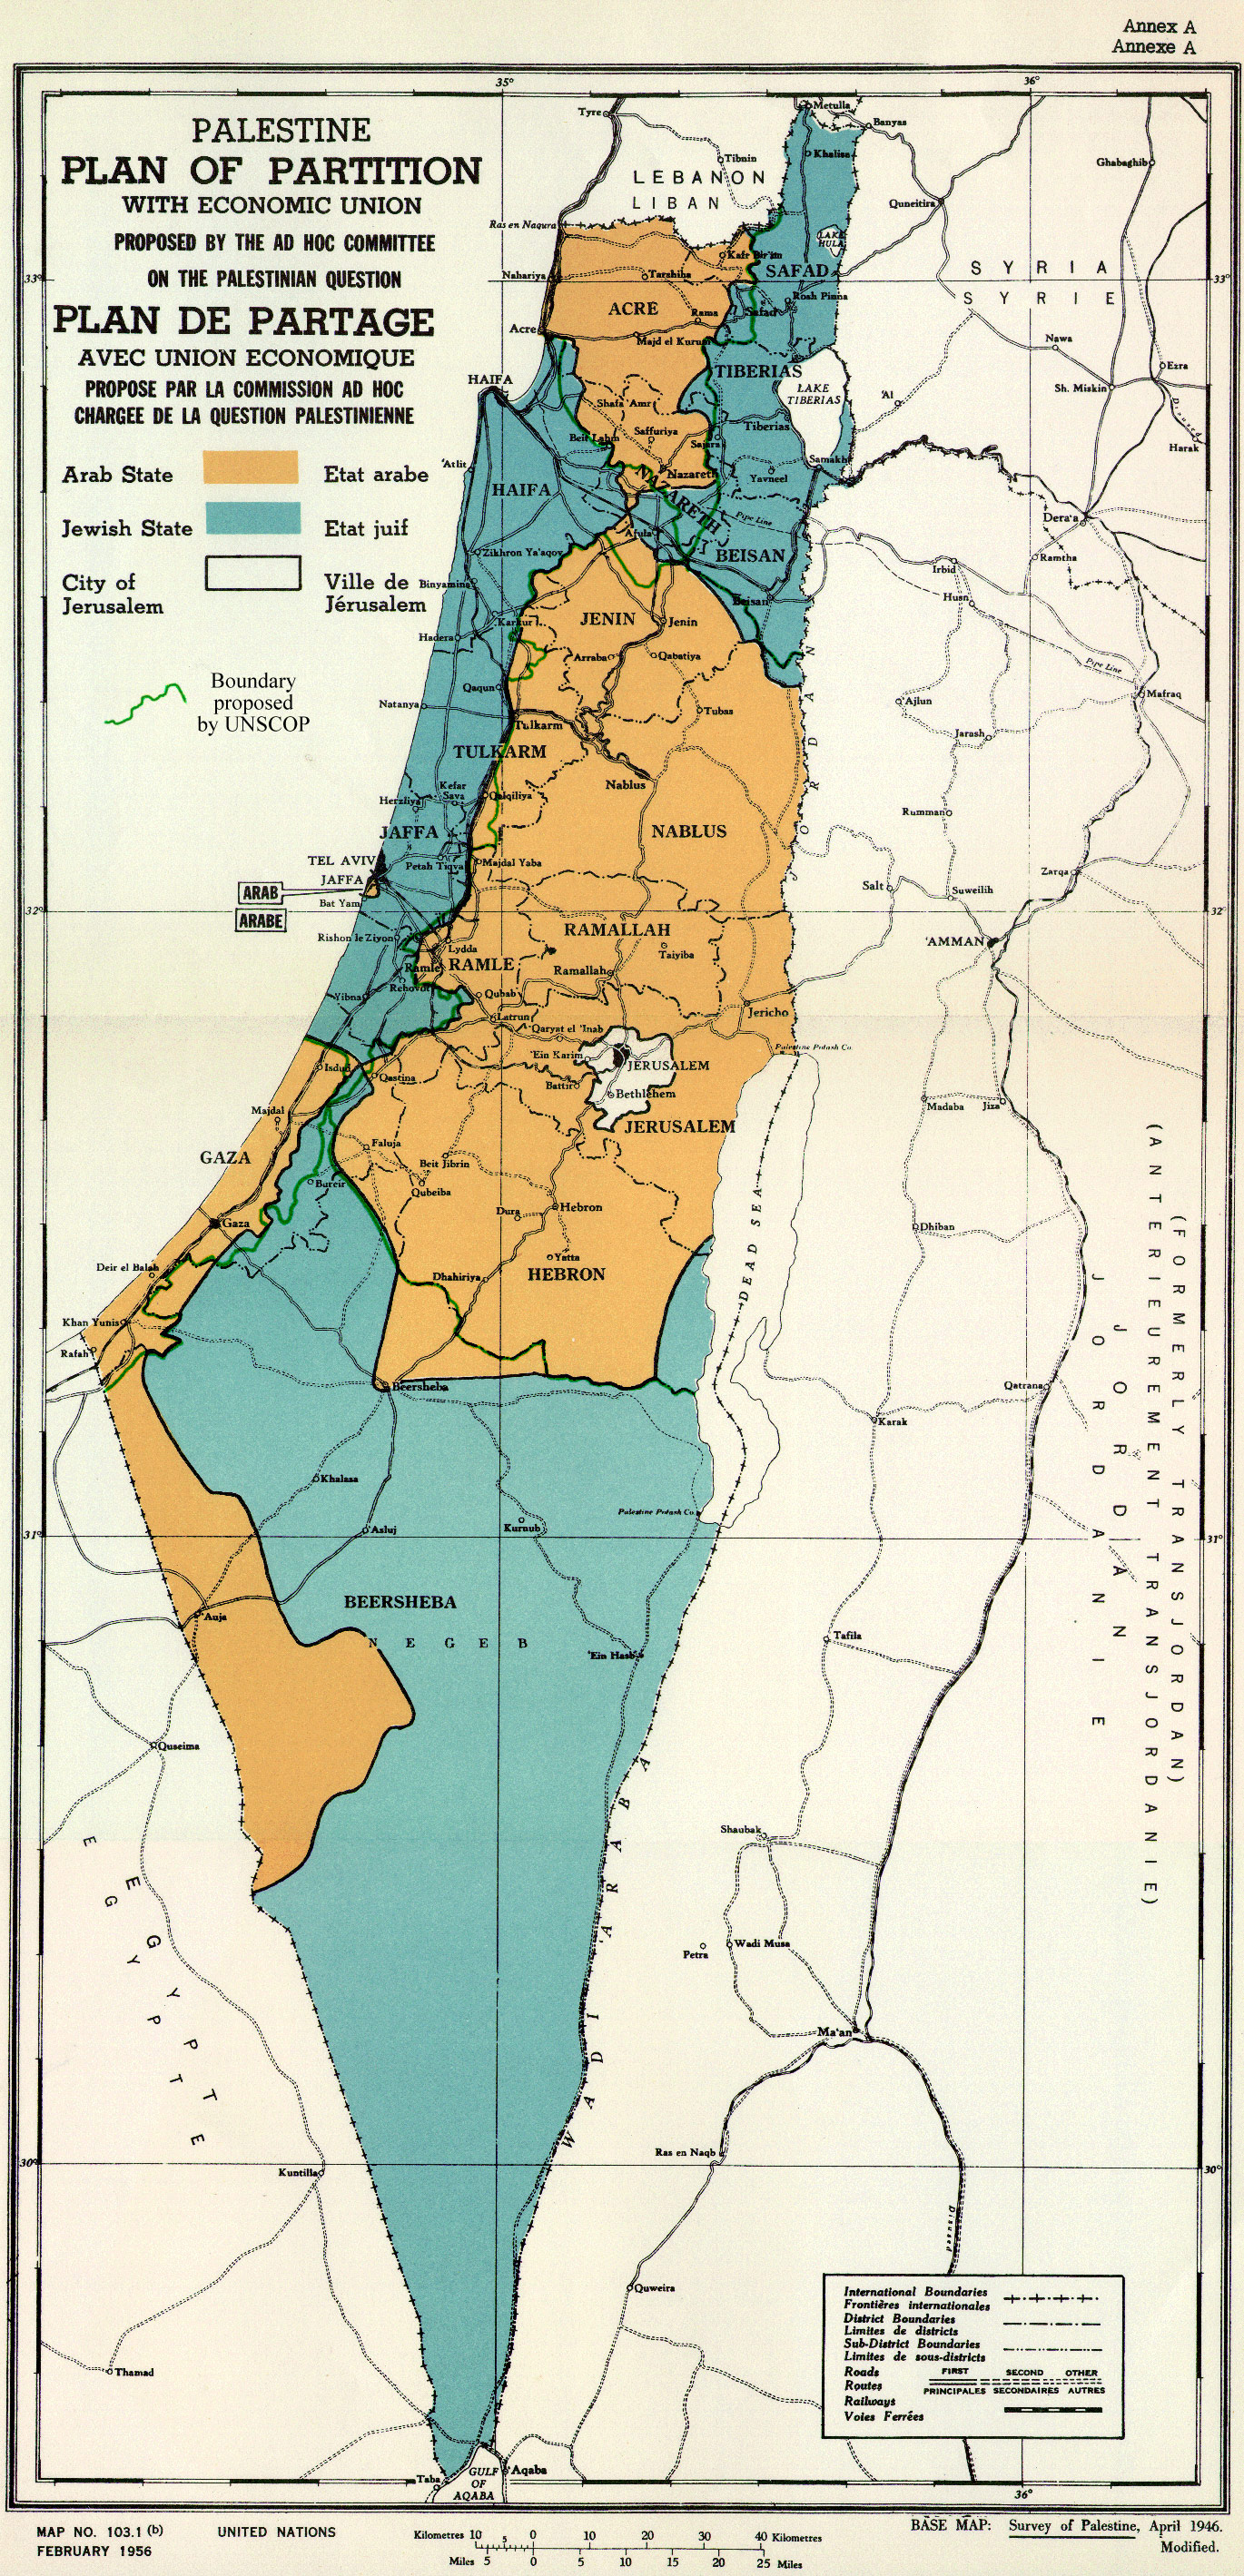 UN_Palestine_Partition_Versions_1947.jpg